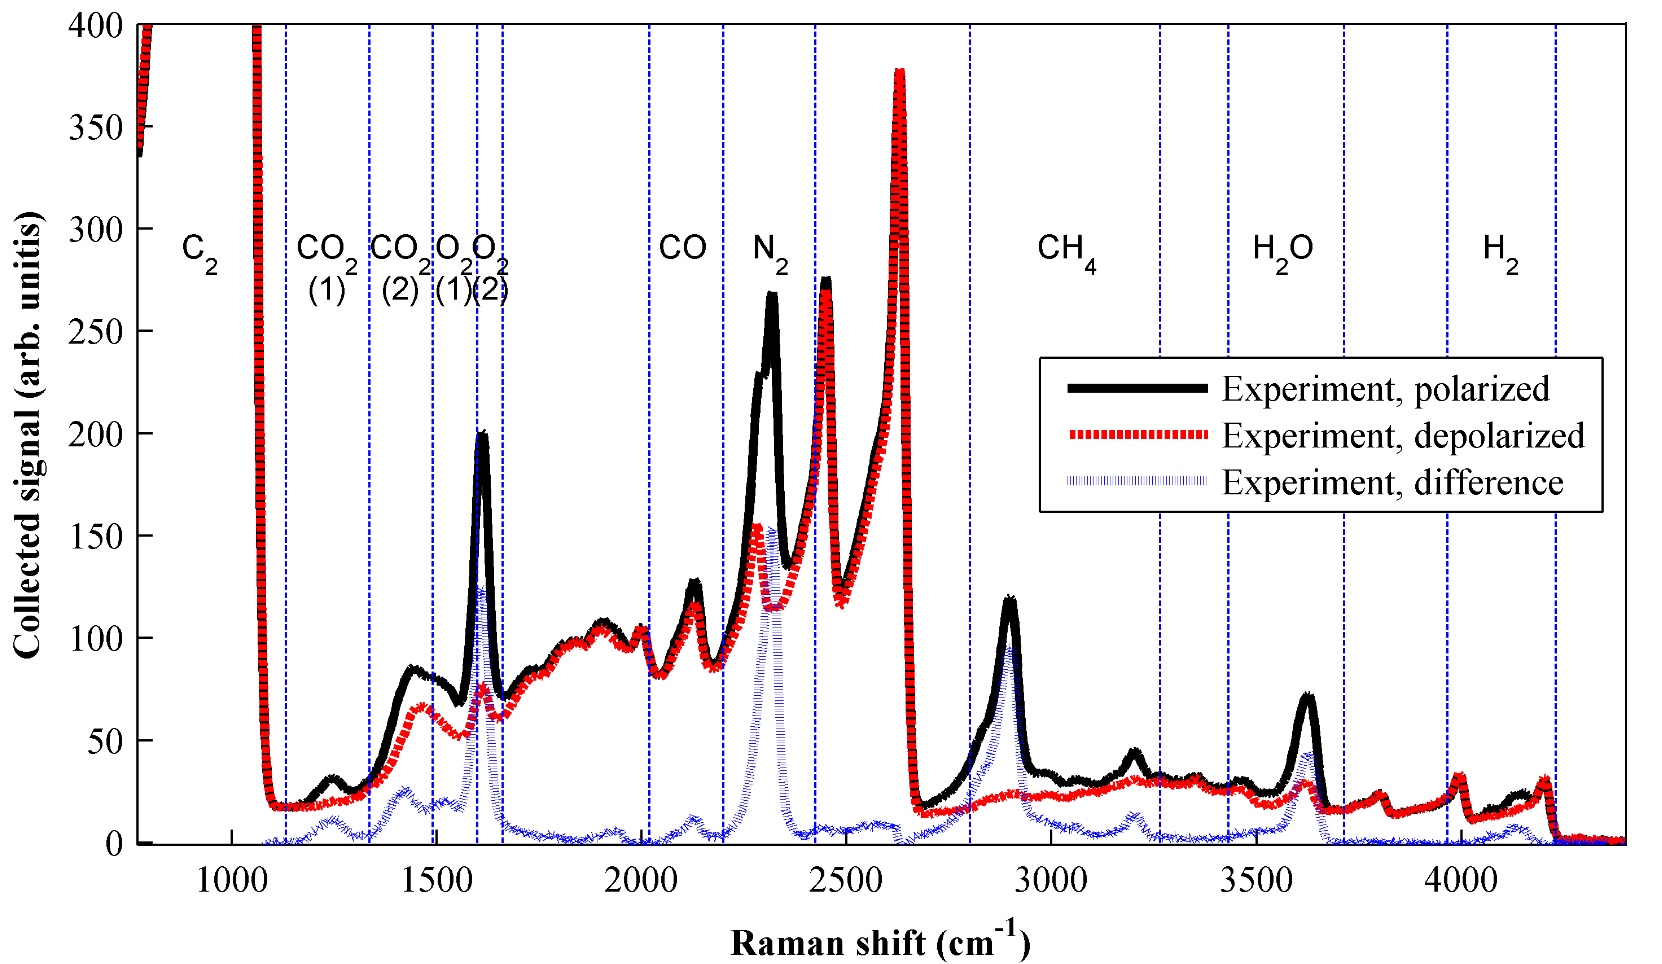 Average Raman spectra from the peak-interference region of a steady laminar flame illustrate the ability to greatly suppress unpolarized fluorescence interference by subtracting the depolarized spectrum from the polarized spectrum.